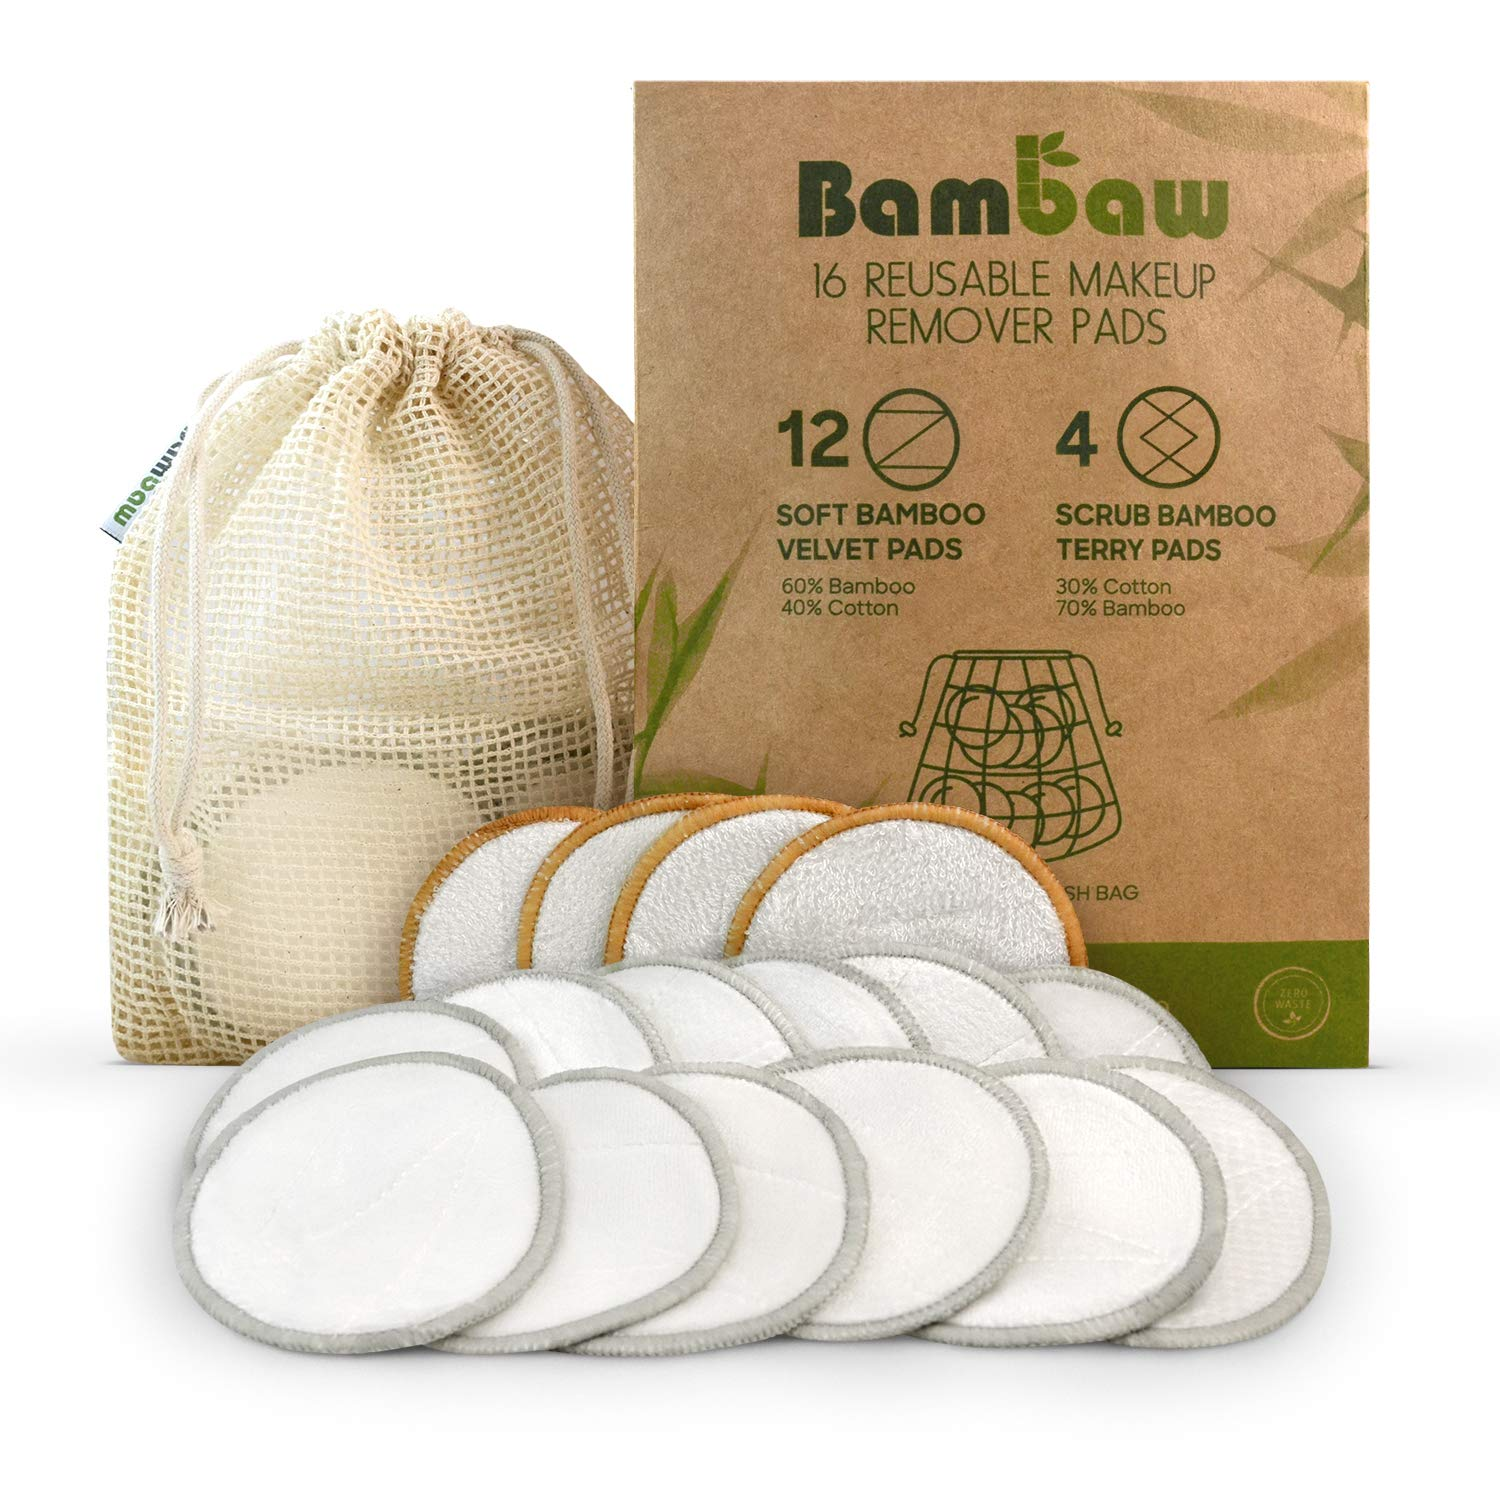 Reusable Make Up Remover Pads | 16 Bamboo Removal Pads with Laundry Bag | Washable and Eco-Friendly